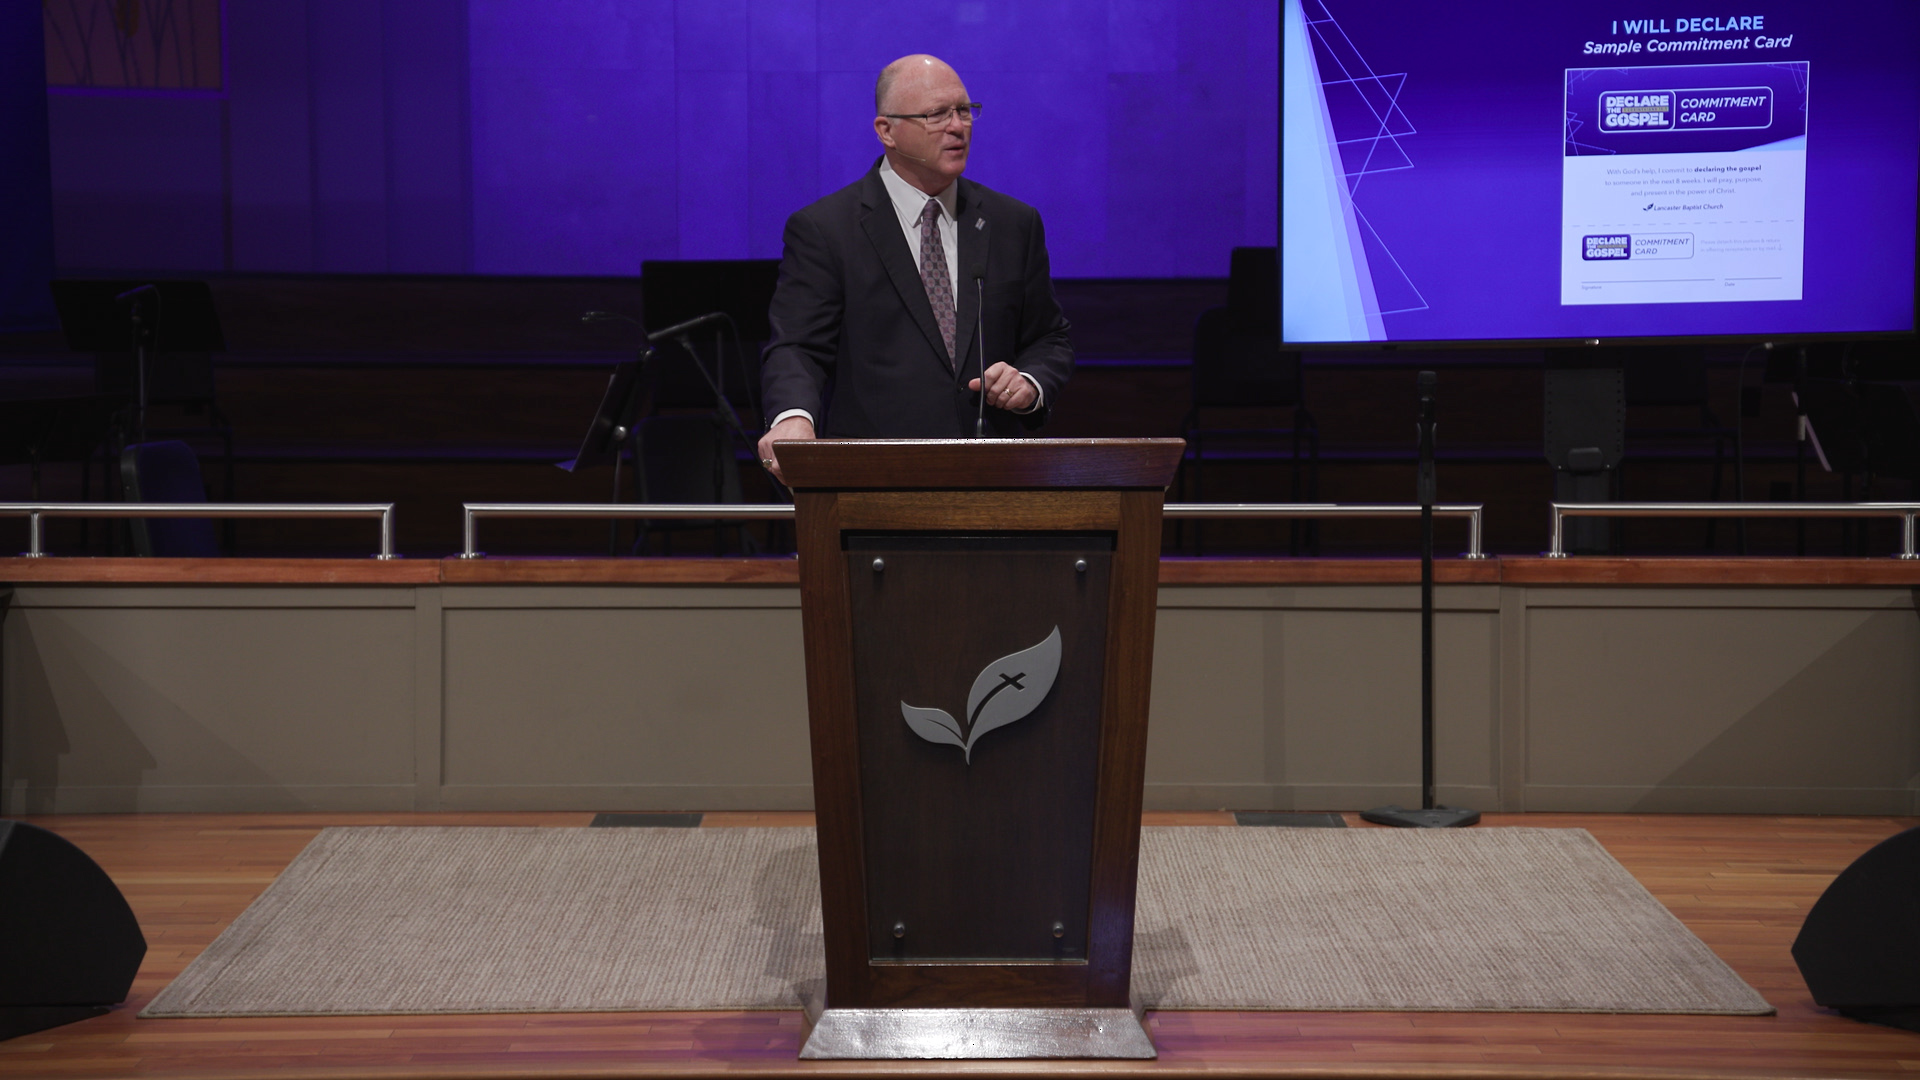 Pastor Paul Chappell: Declare the Gospel Part 1